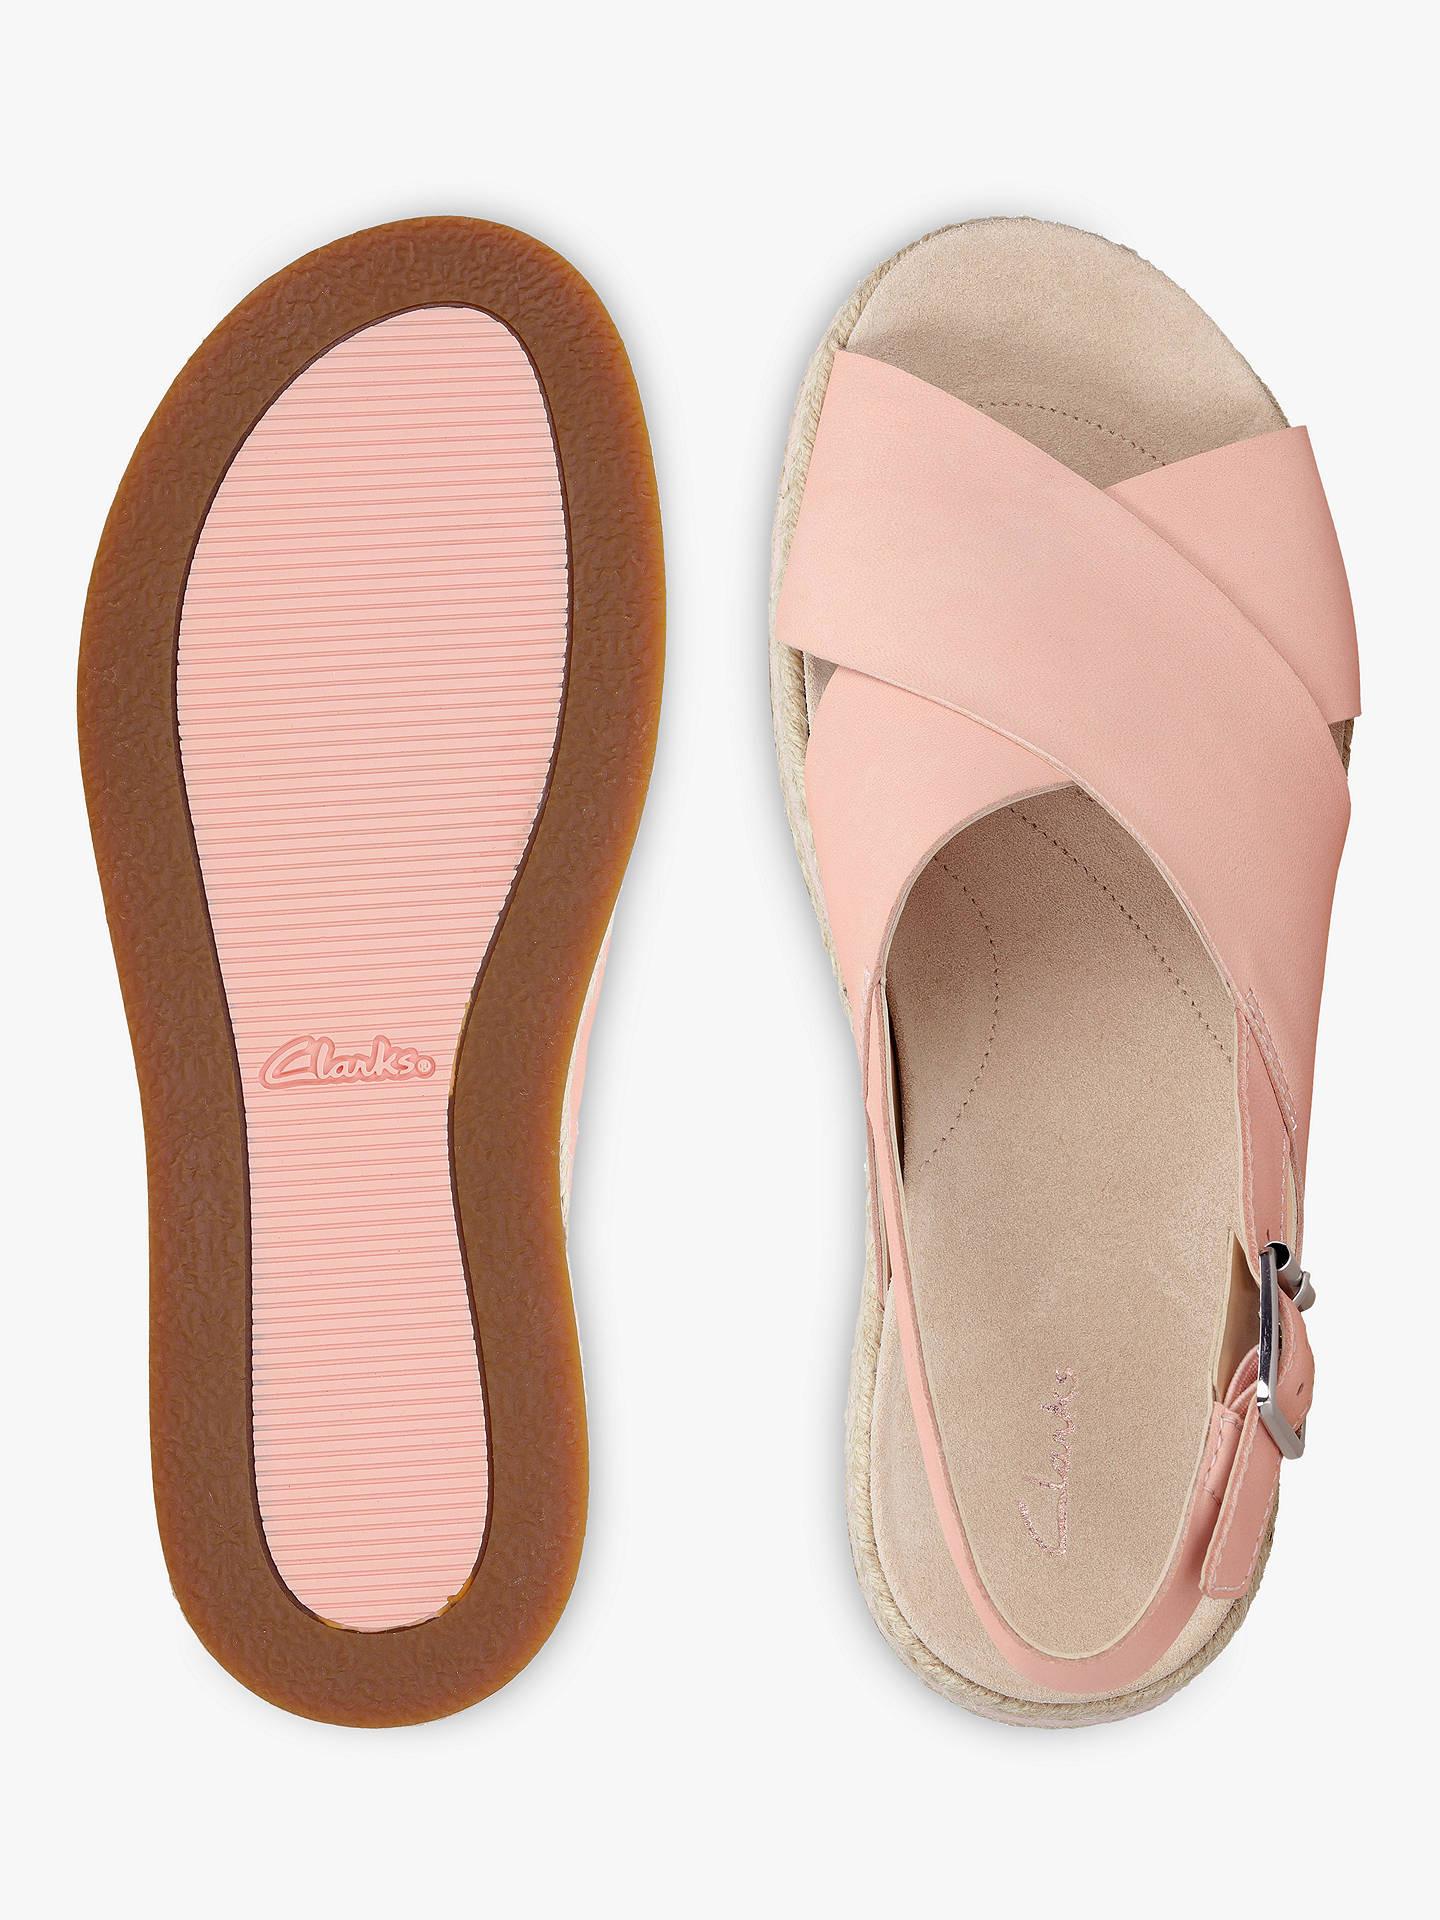 unbeatable price outlet for sale exceptional range of styles and colors Clarks Botanic Fay Sandals, Light Pink Leather